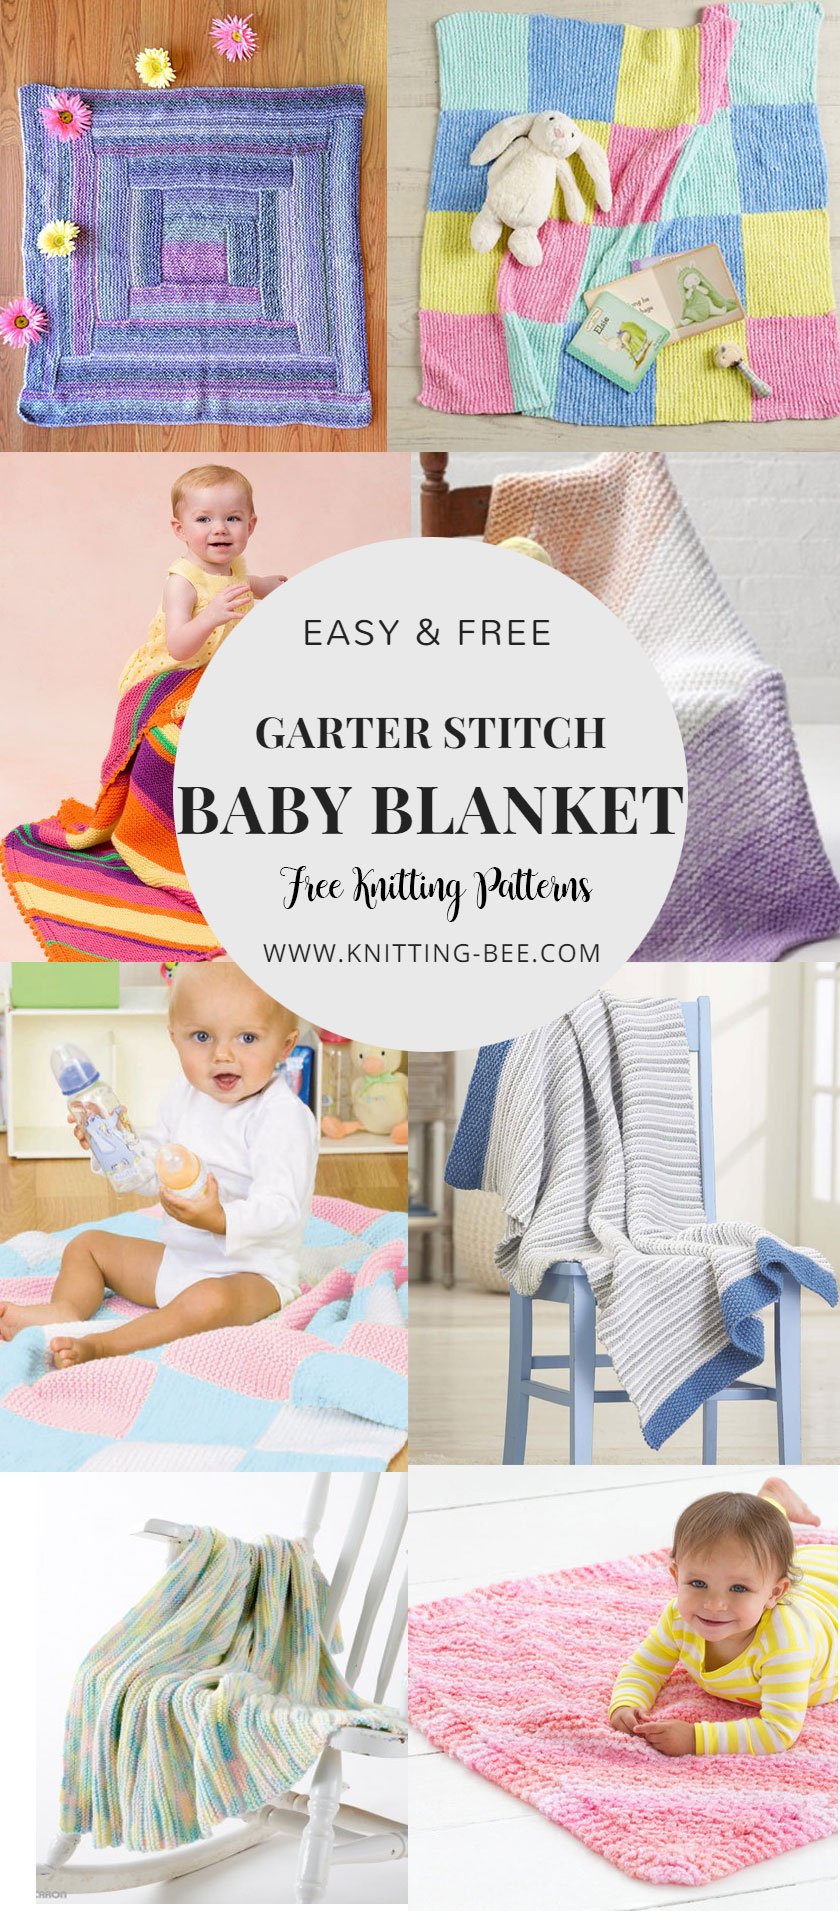 807265f50 Easy and Free Garter Stitch Baby Blanket Knitting Patterns ...